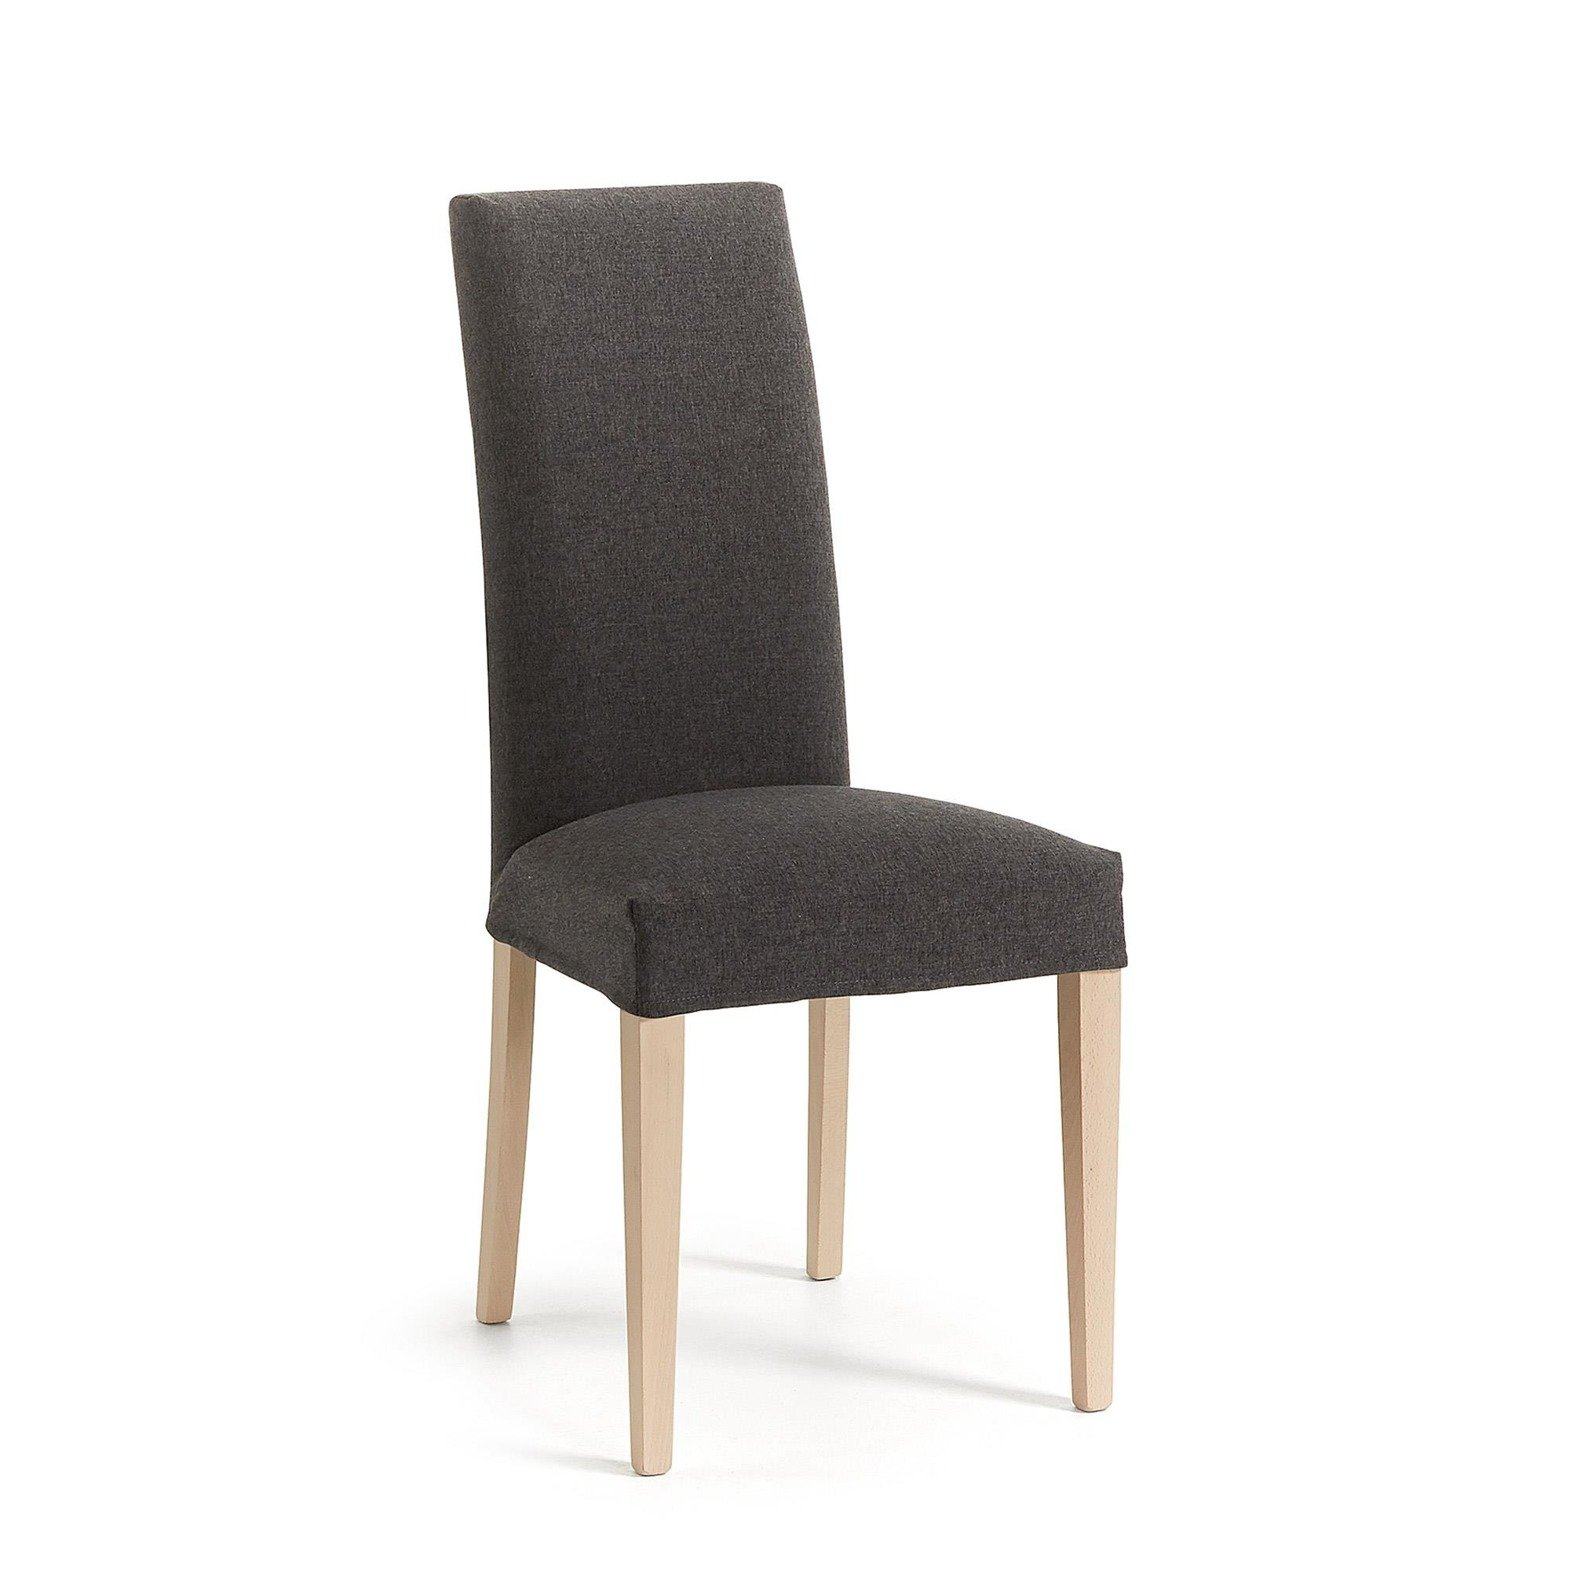 LaForma :: FREIA Chair removable natural wood fabric graphite